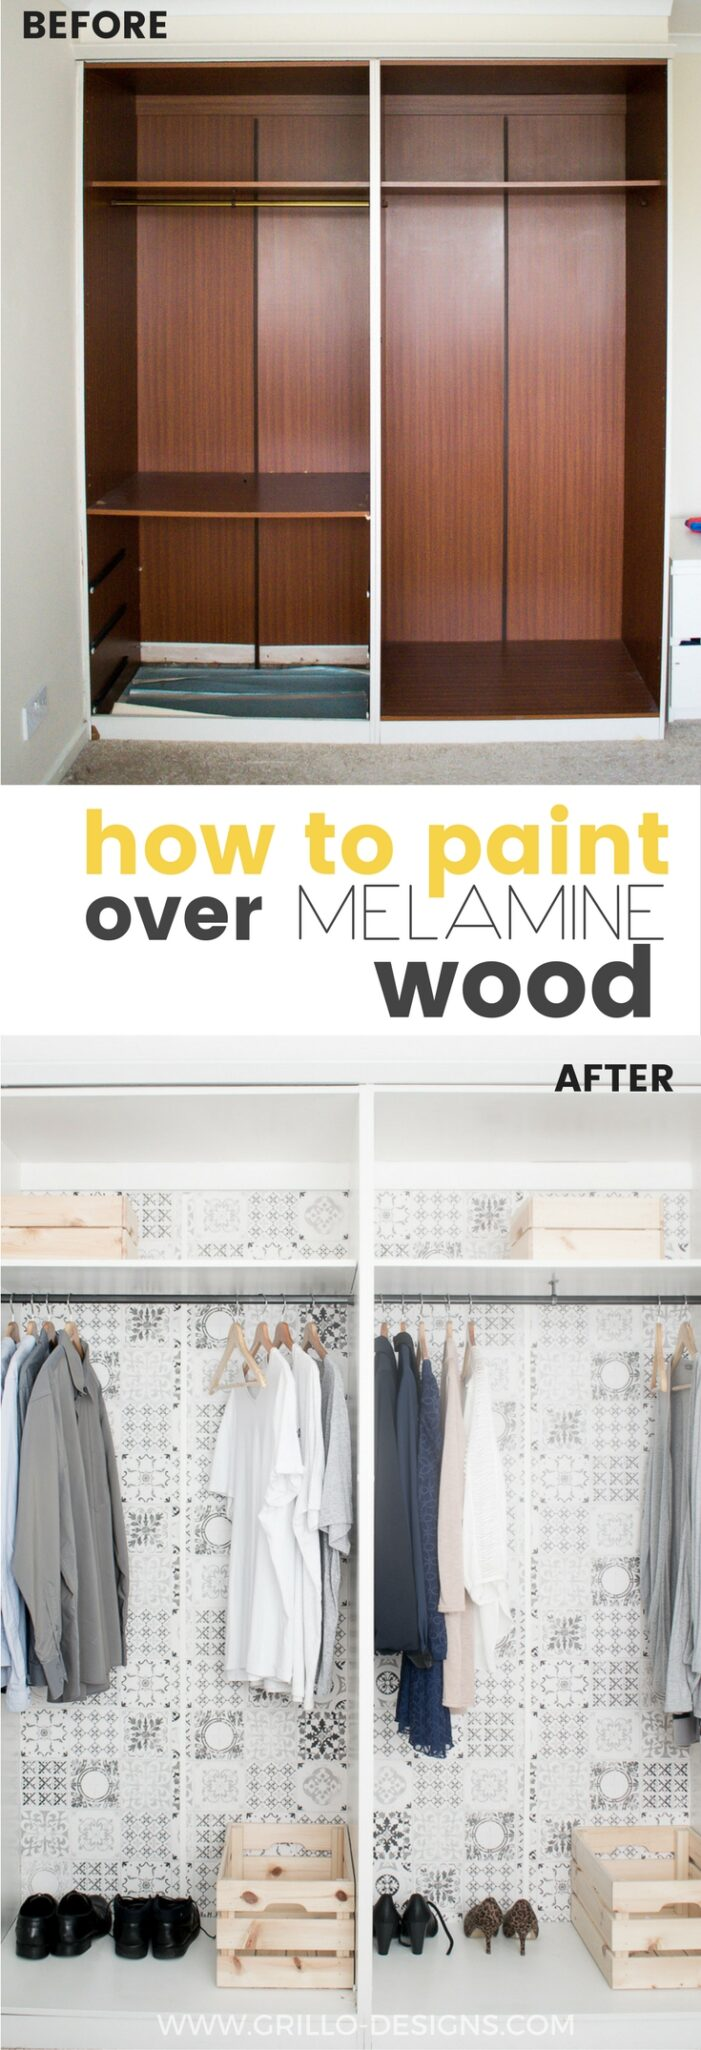 How To Paint Melamine Wood And Live To Tell The Tale Grillo Designs